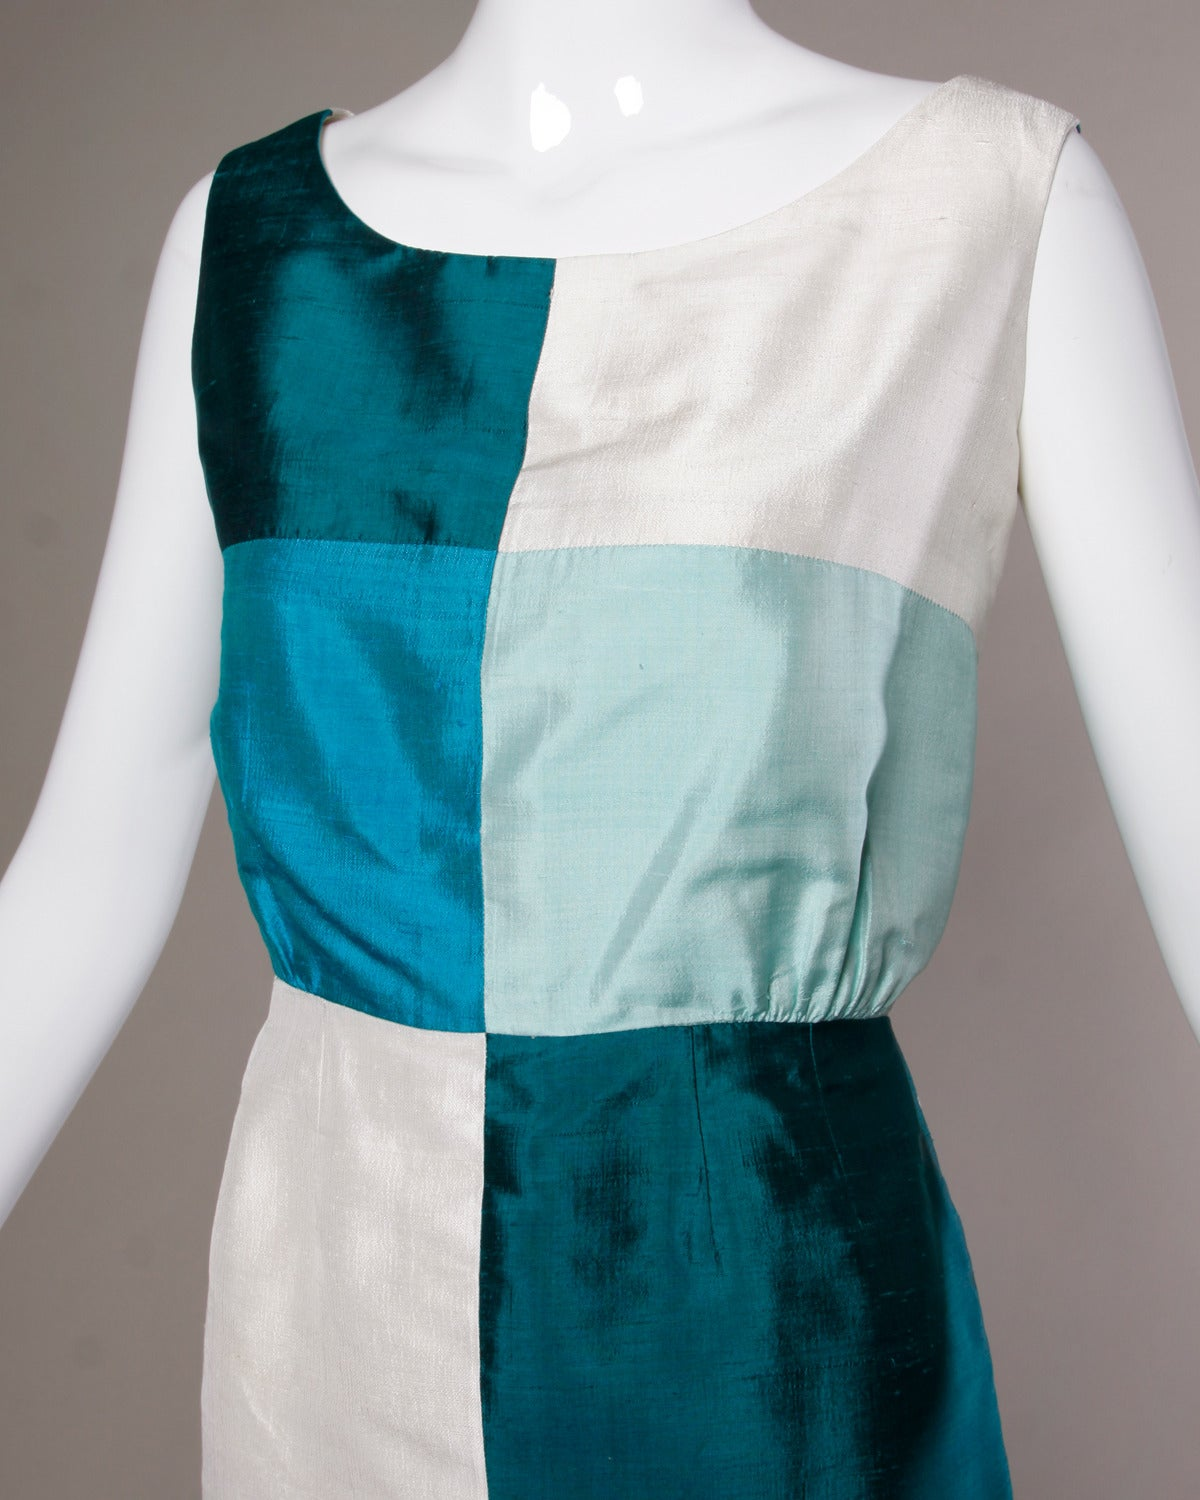 Simple and chic silk dupioni sheath dress in color blocked shades of blue.